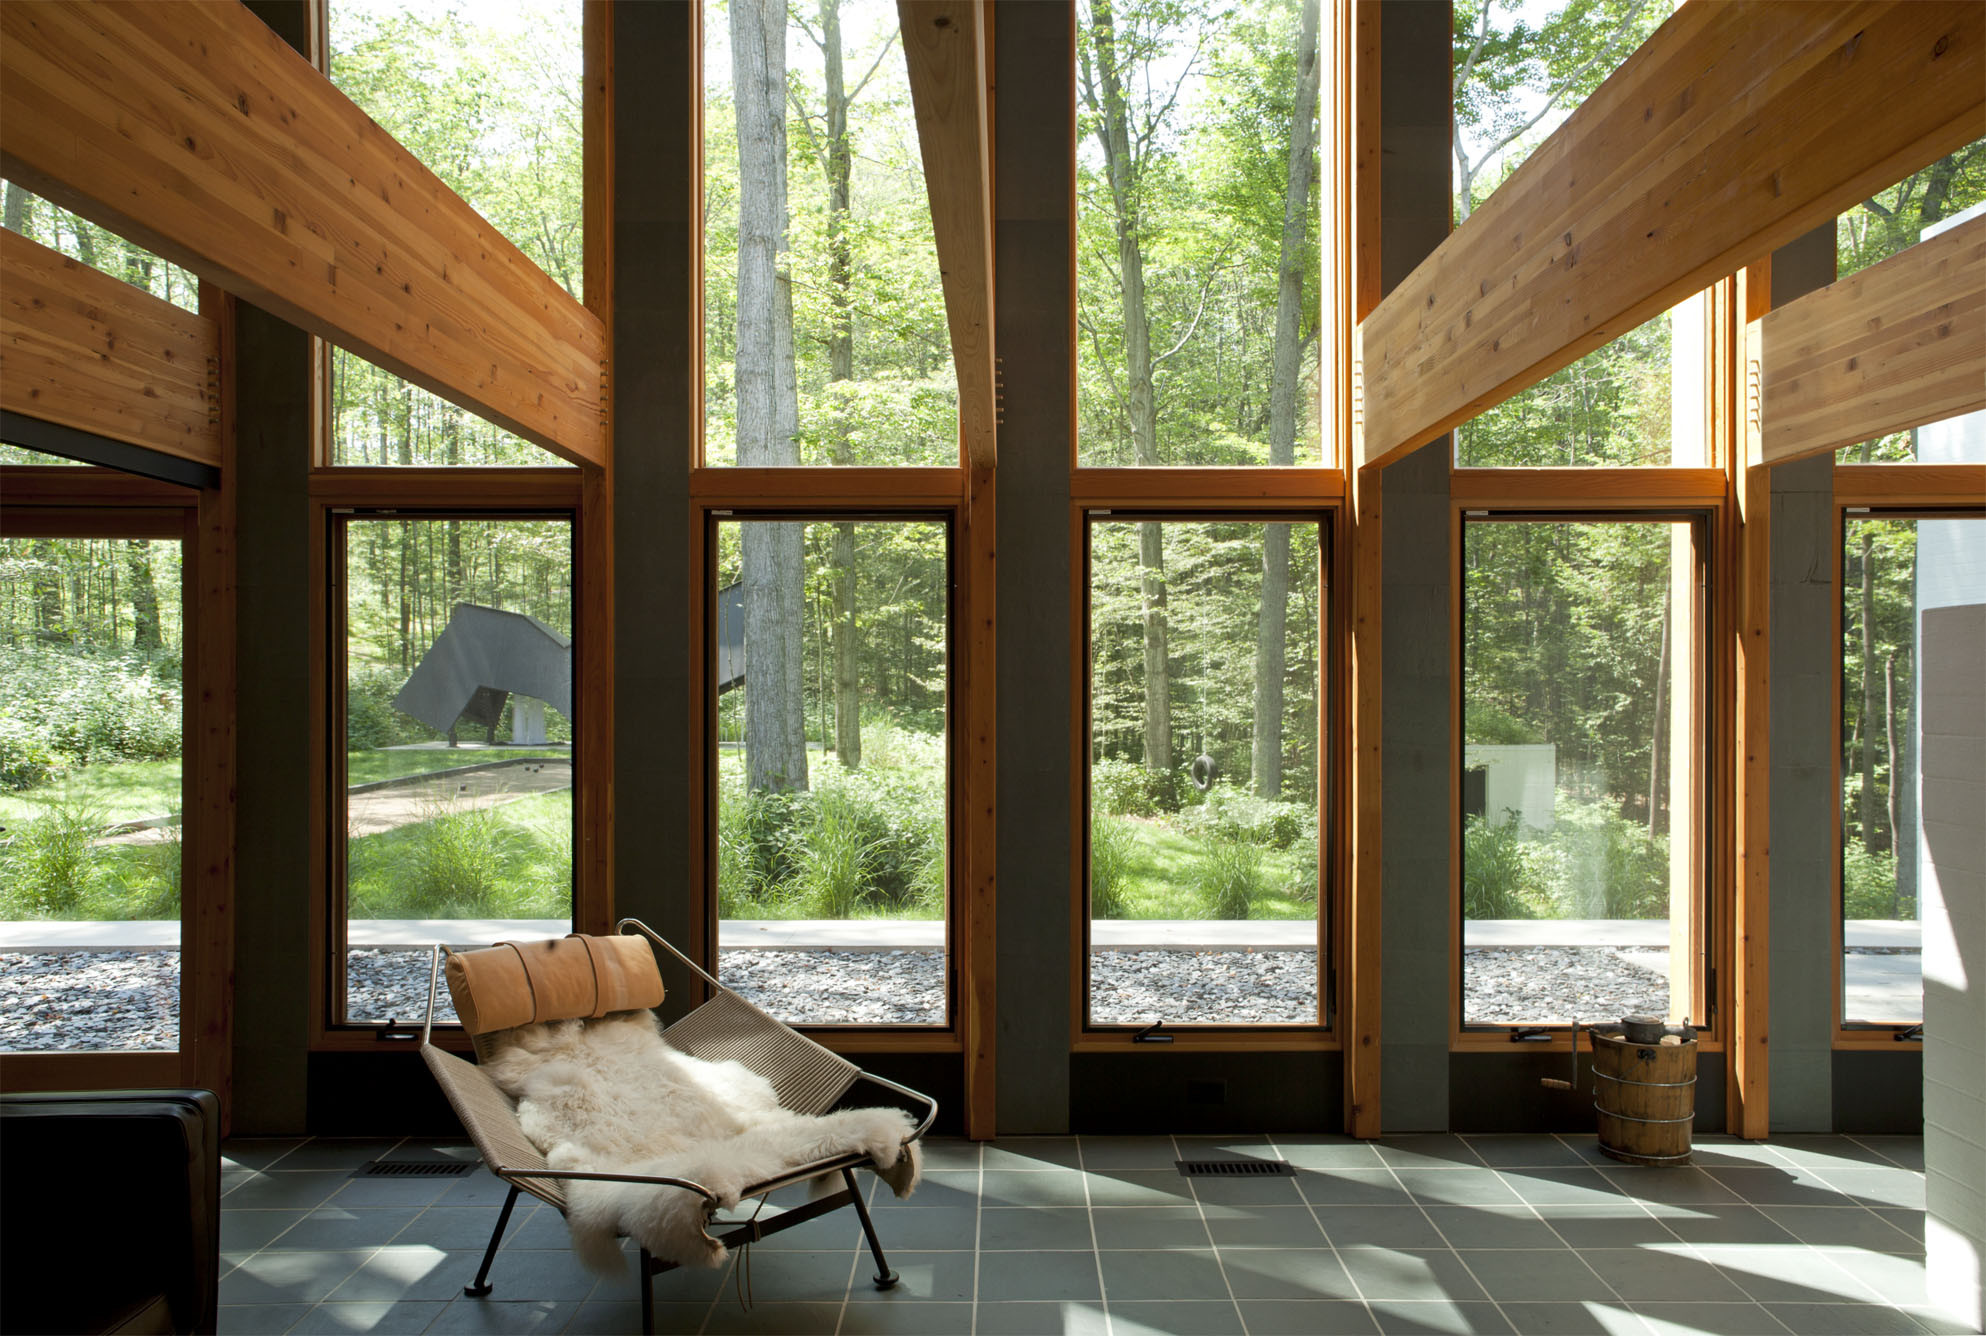 Gallery of yingst retreat salmela architect 5 for Salmela architect